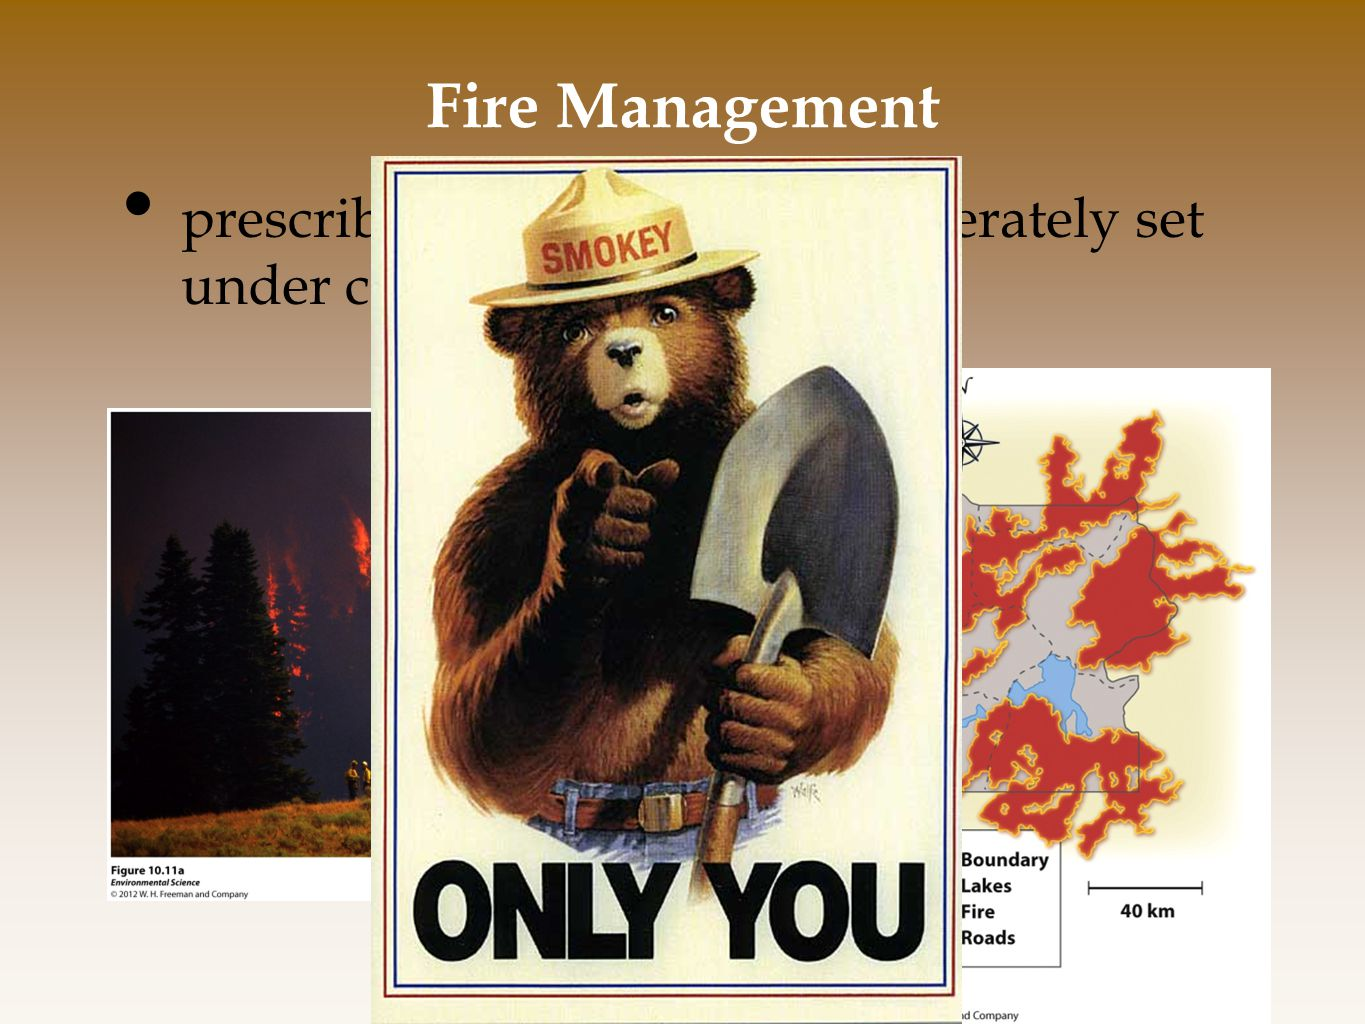 Fire Management prescribed burns- a fire is deliberately set under controlled conditions.